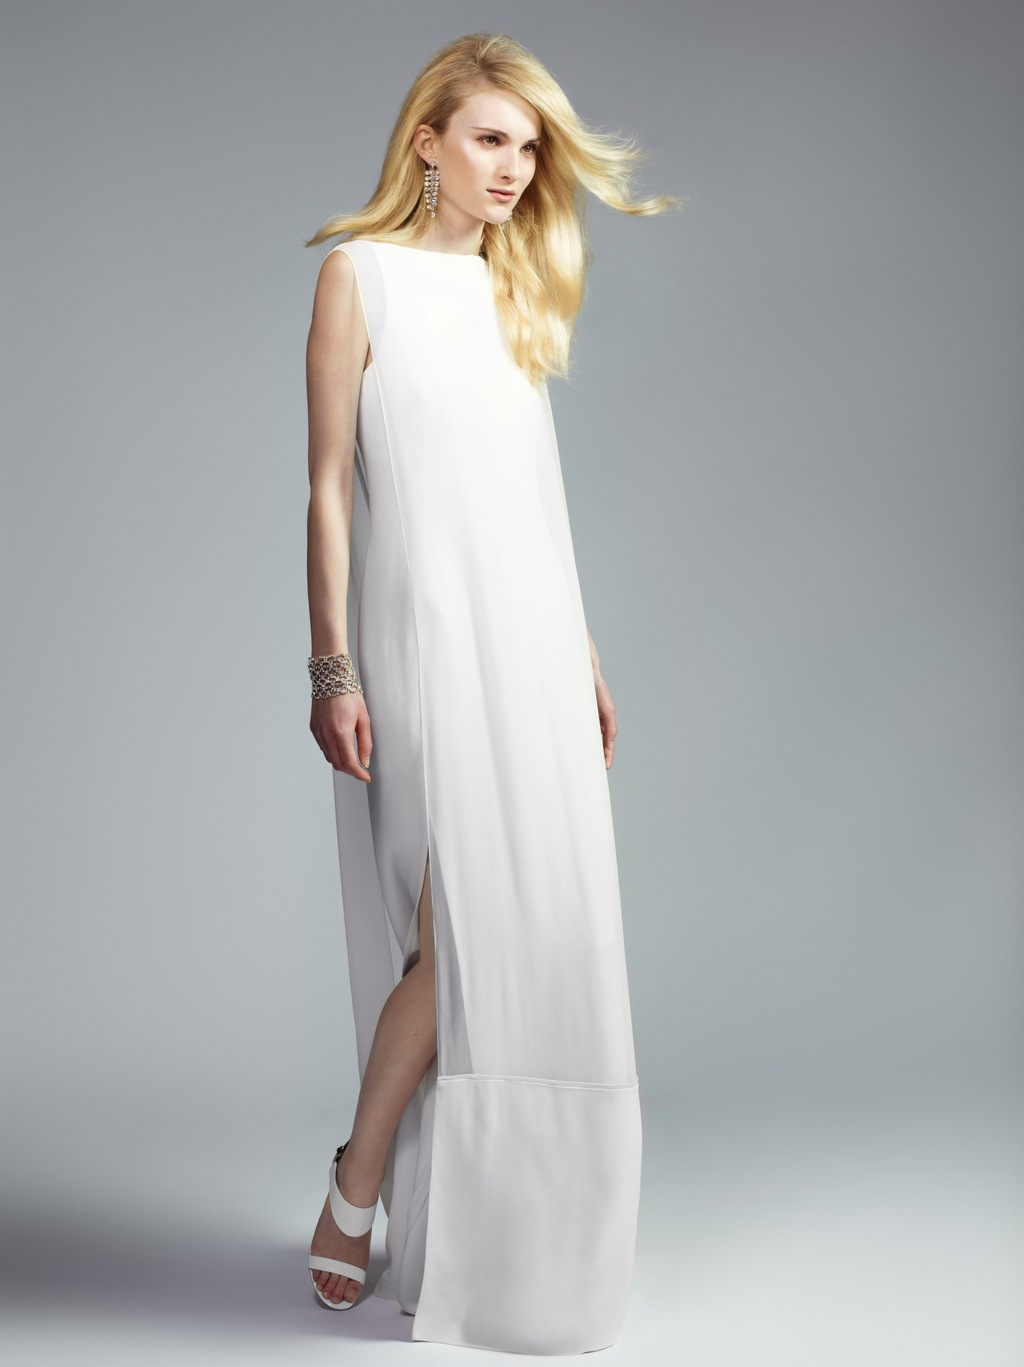 Chalayan Crepe Wedding Dress 2013 Exclusive Bridal Designer Collection From Net A Porter